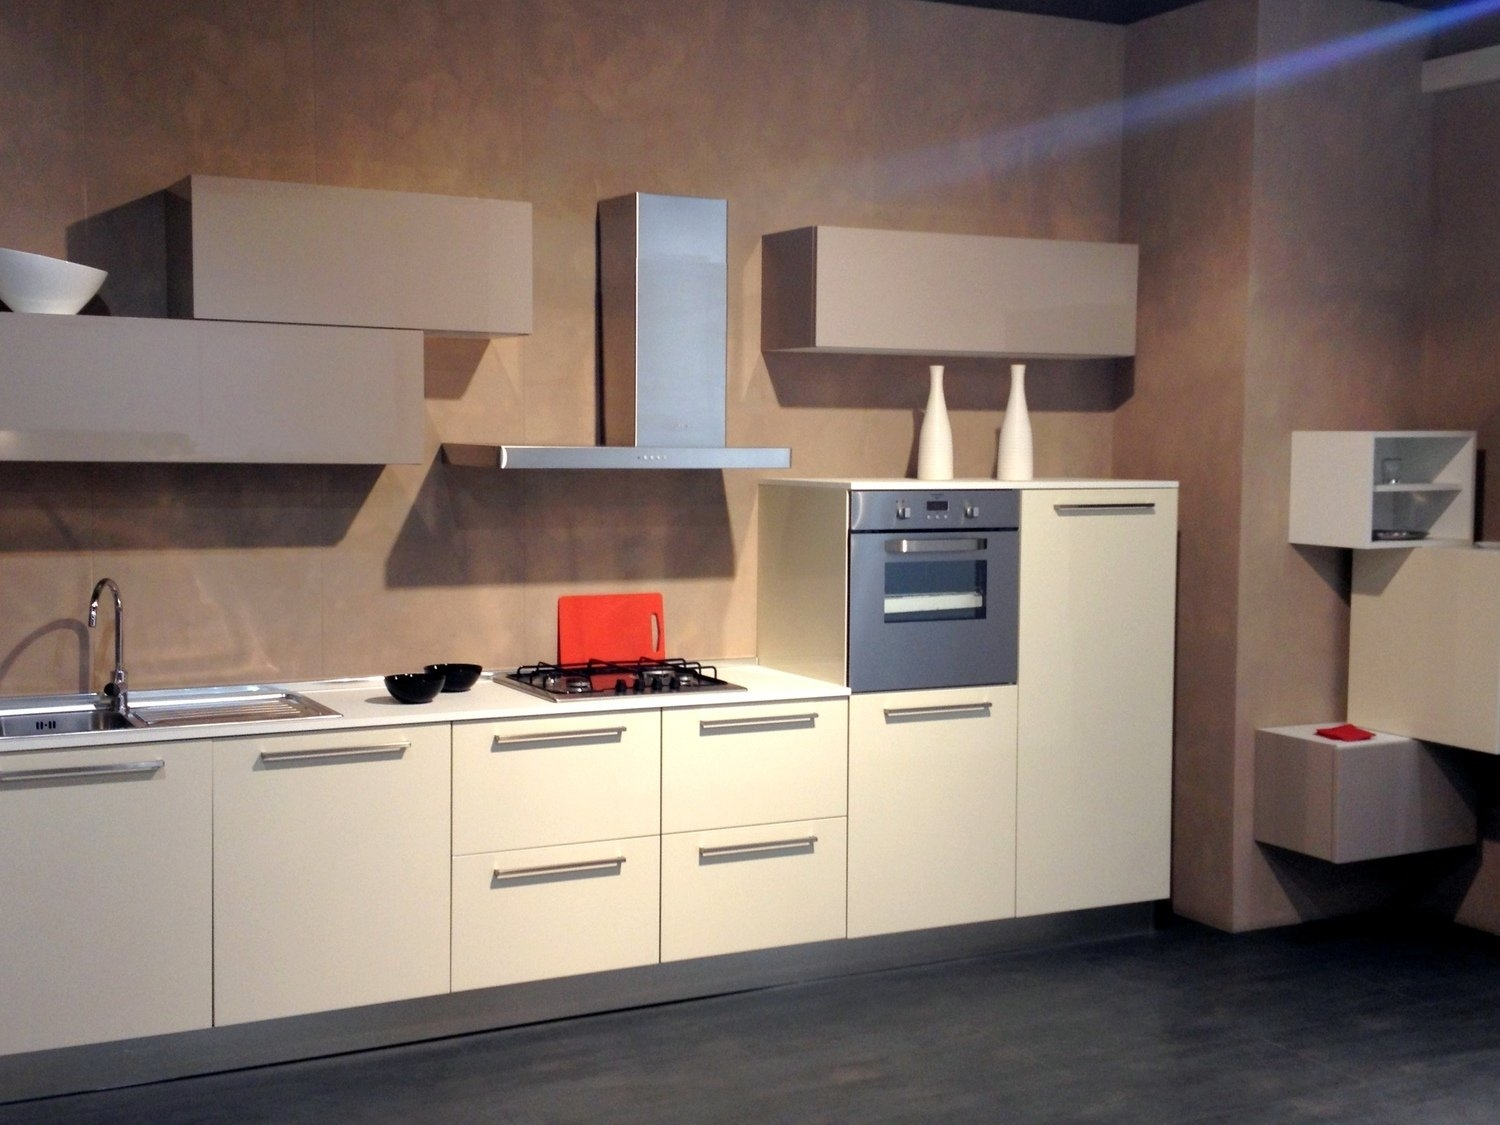 Cucine low cost roma with cucine low cost roma great cucine low cost roma with cucine low cost - Cucine da giardino prezzi ...